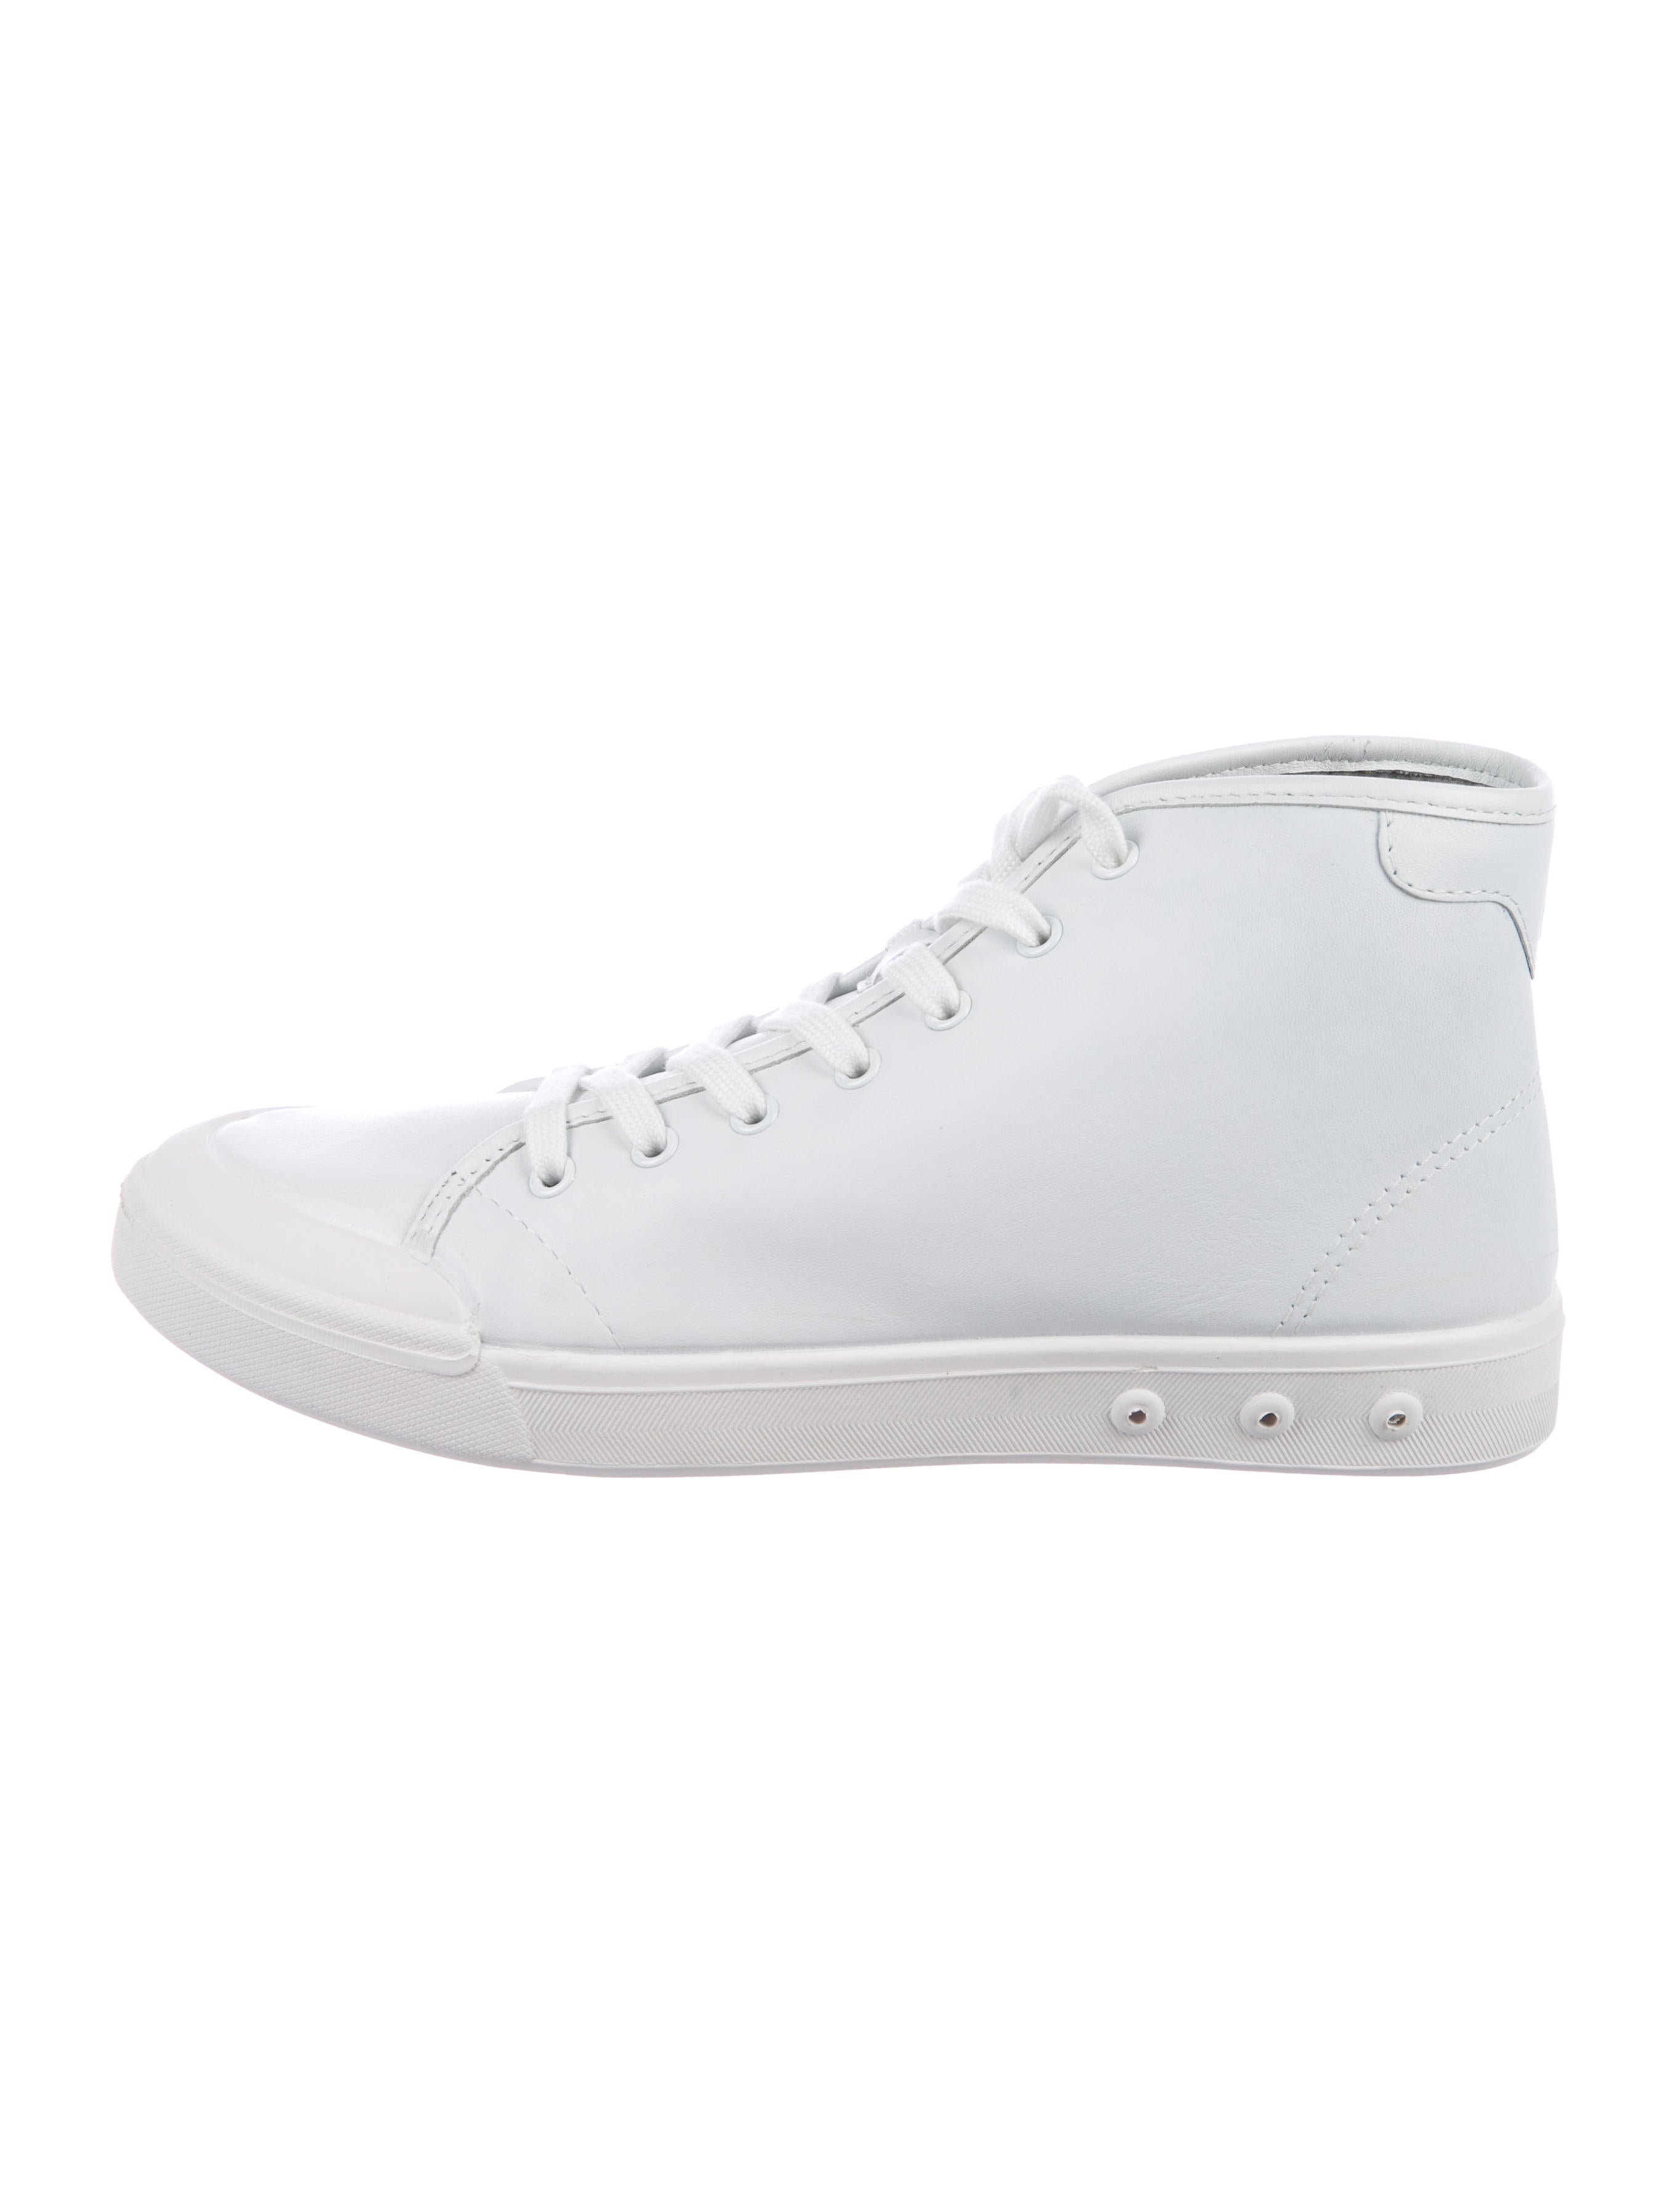 Rag & Bone Standard Issue Leather High-Top Sneakers w/ Tags best store to get online cheap sale best seller dKmbb